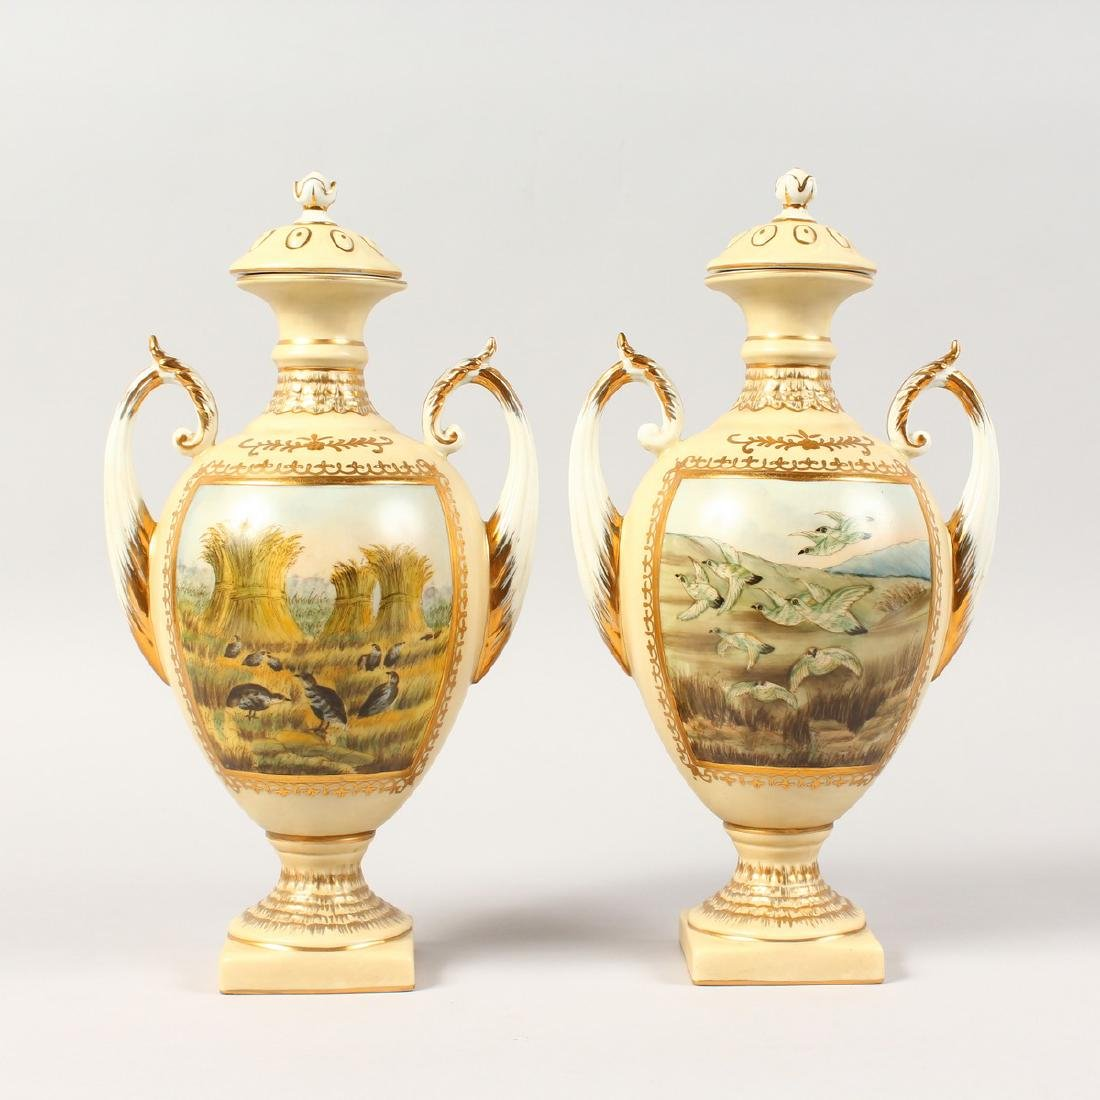 A PAIR OF CONTINENTAL PORCELAIN TWIN-HANDLED VASES AND